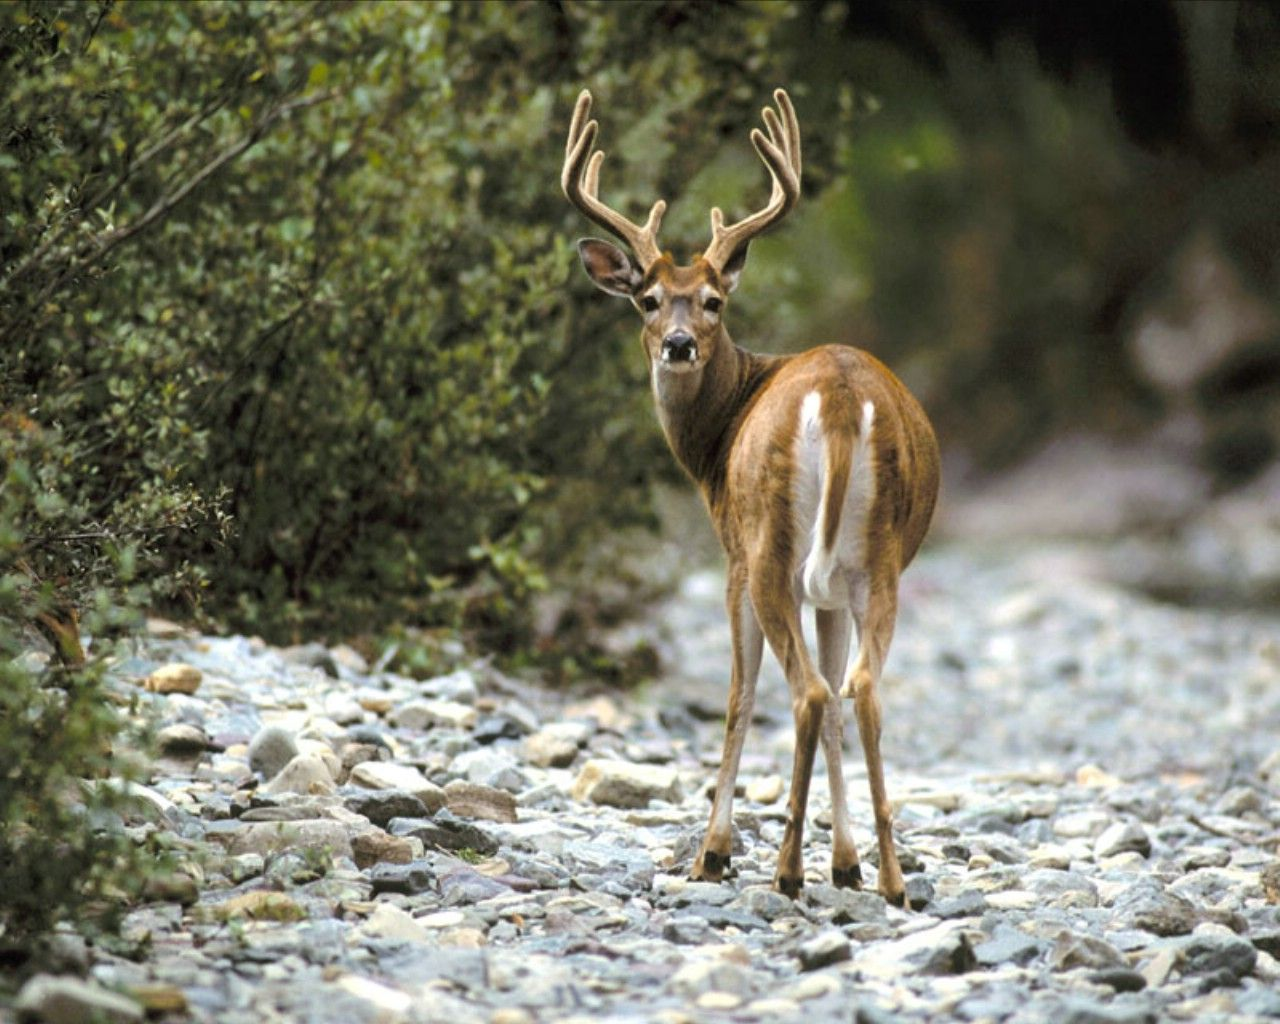 Whitetail deer images 19 whitetail deer wallpaper whitetail deer whitetail deer images 19 whitetail deer wallpaper whitetail deer wallpaper hd voltagebd Image collections